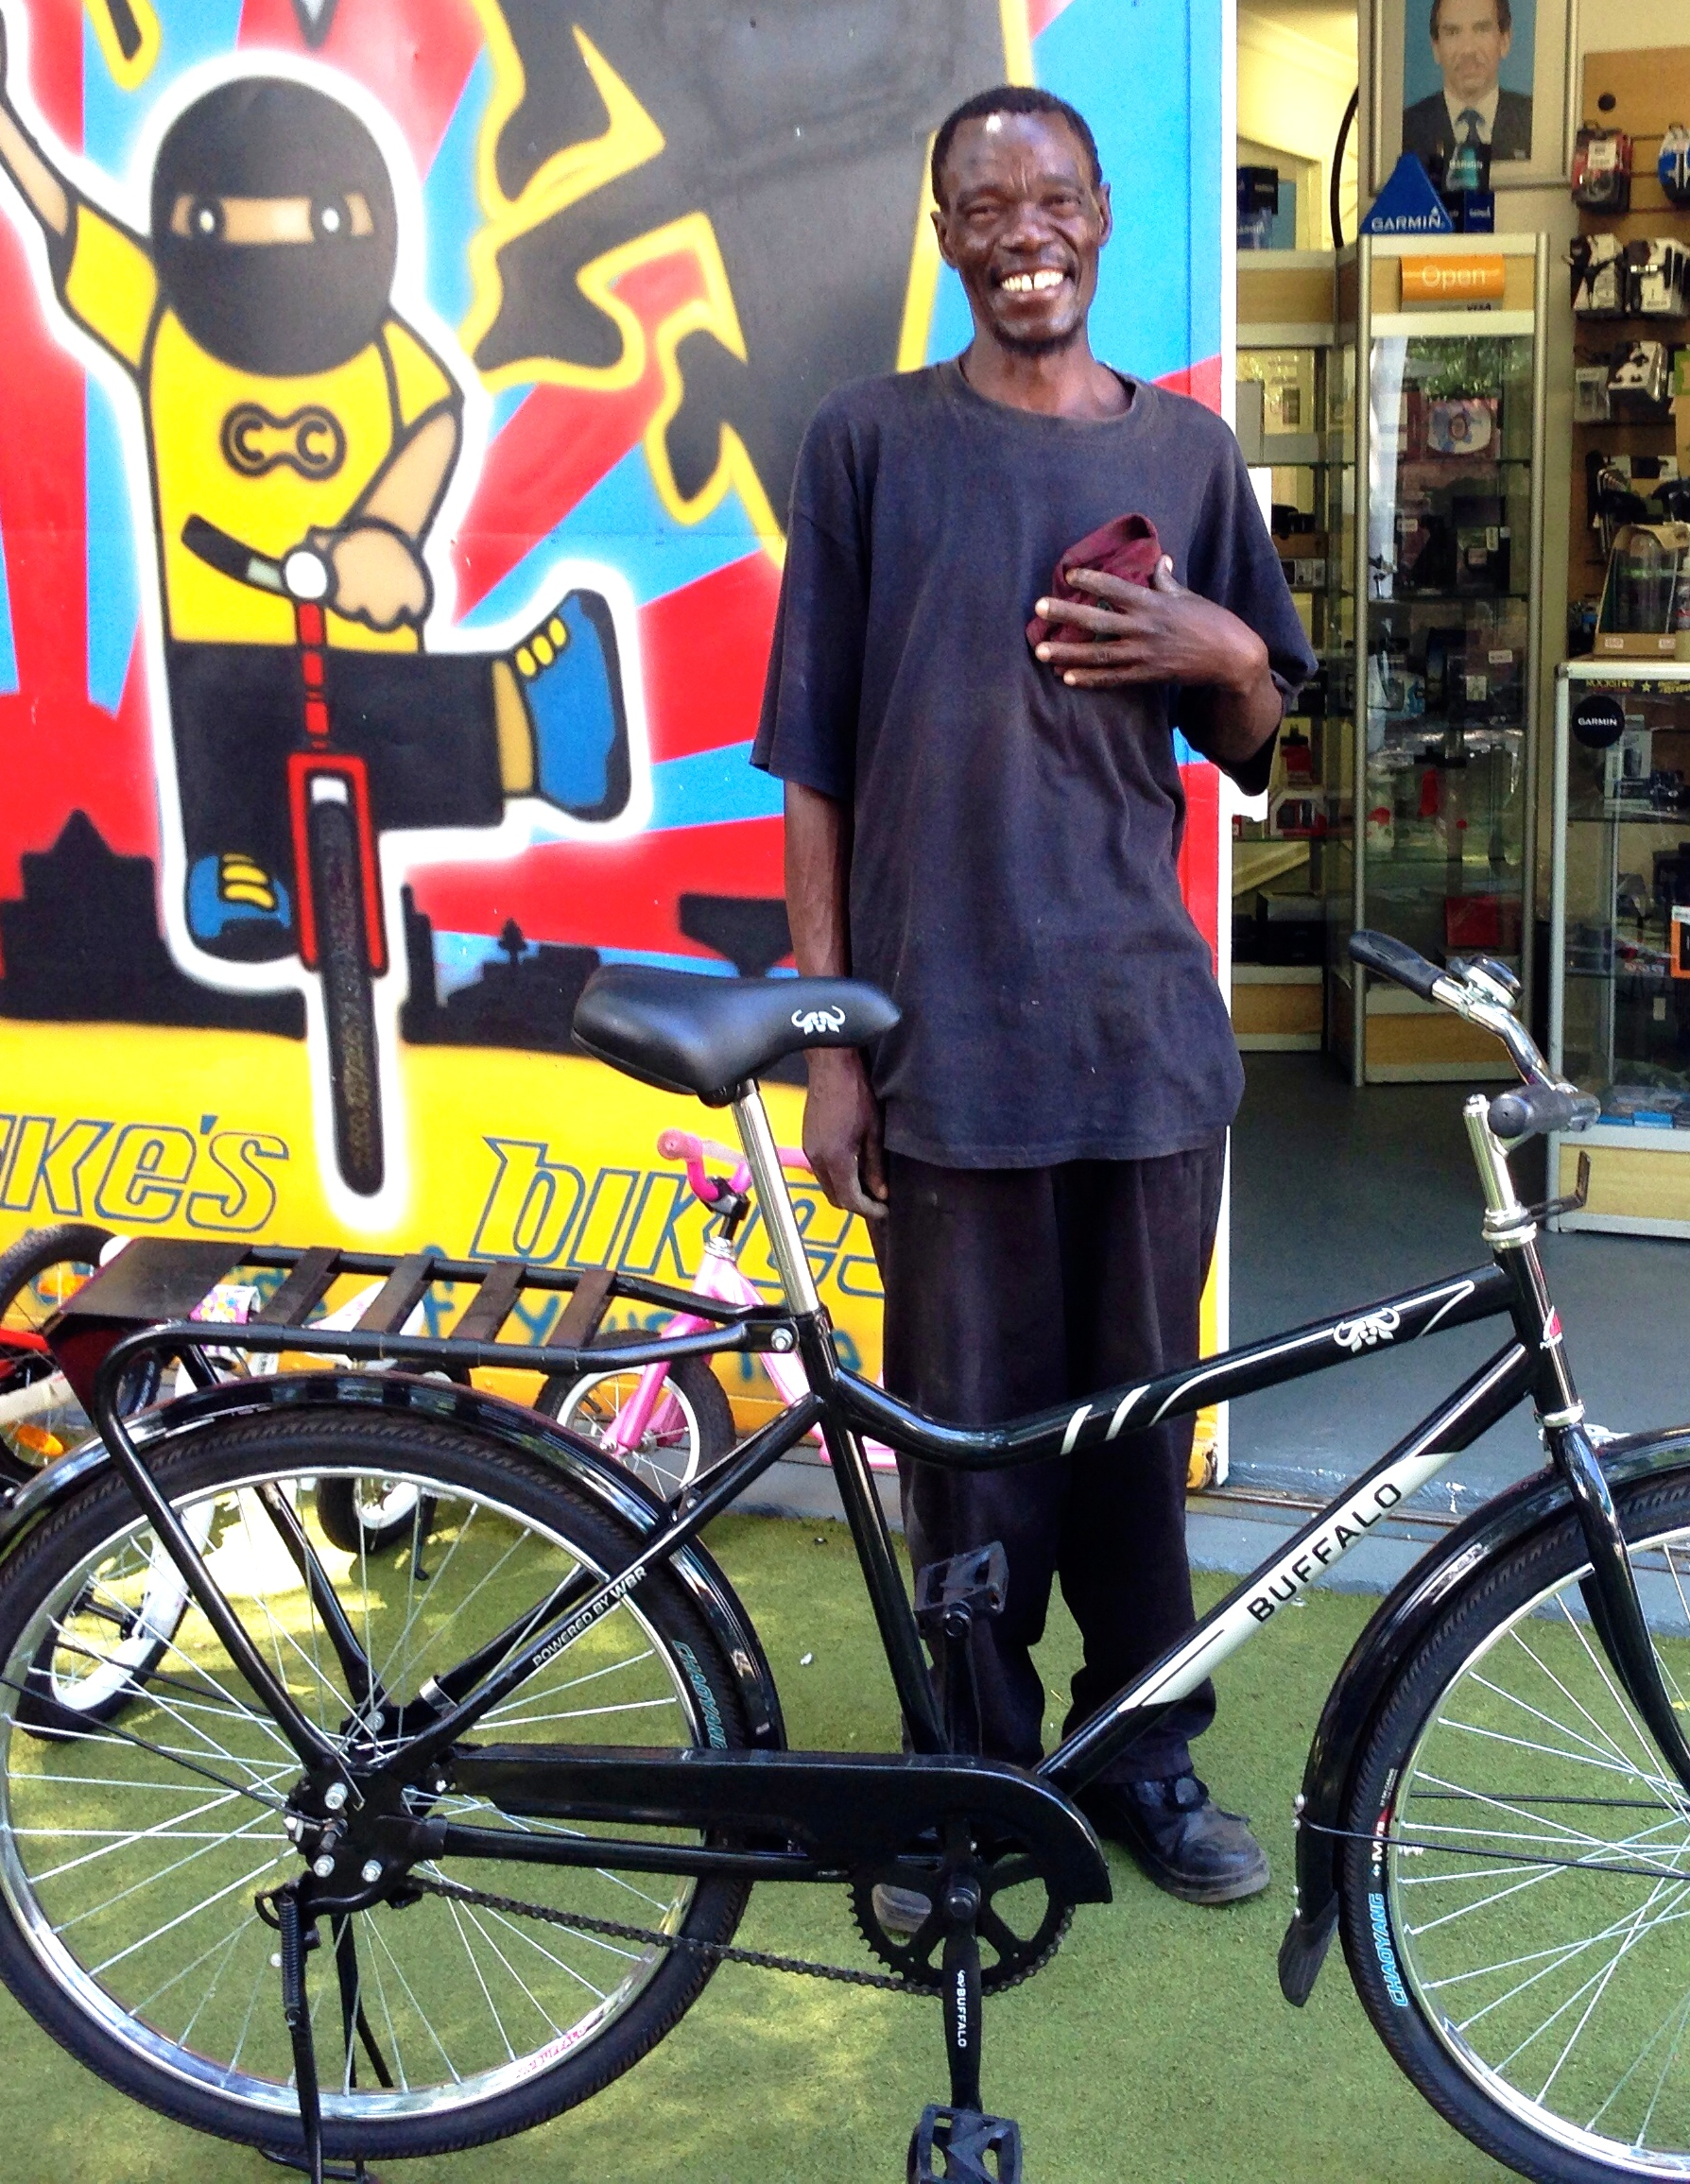 Shakes with his new Buffalo bike.jpg